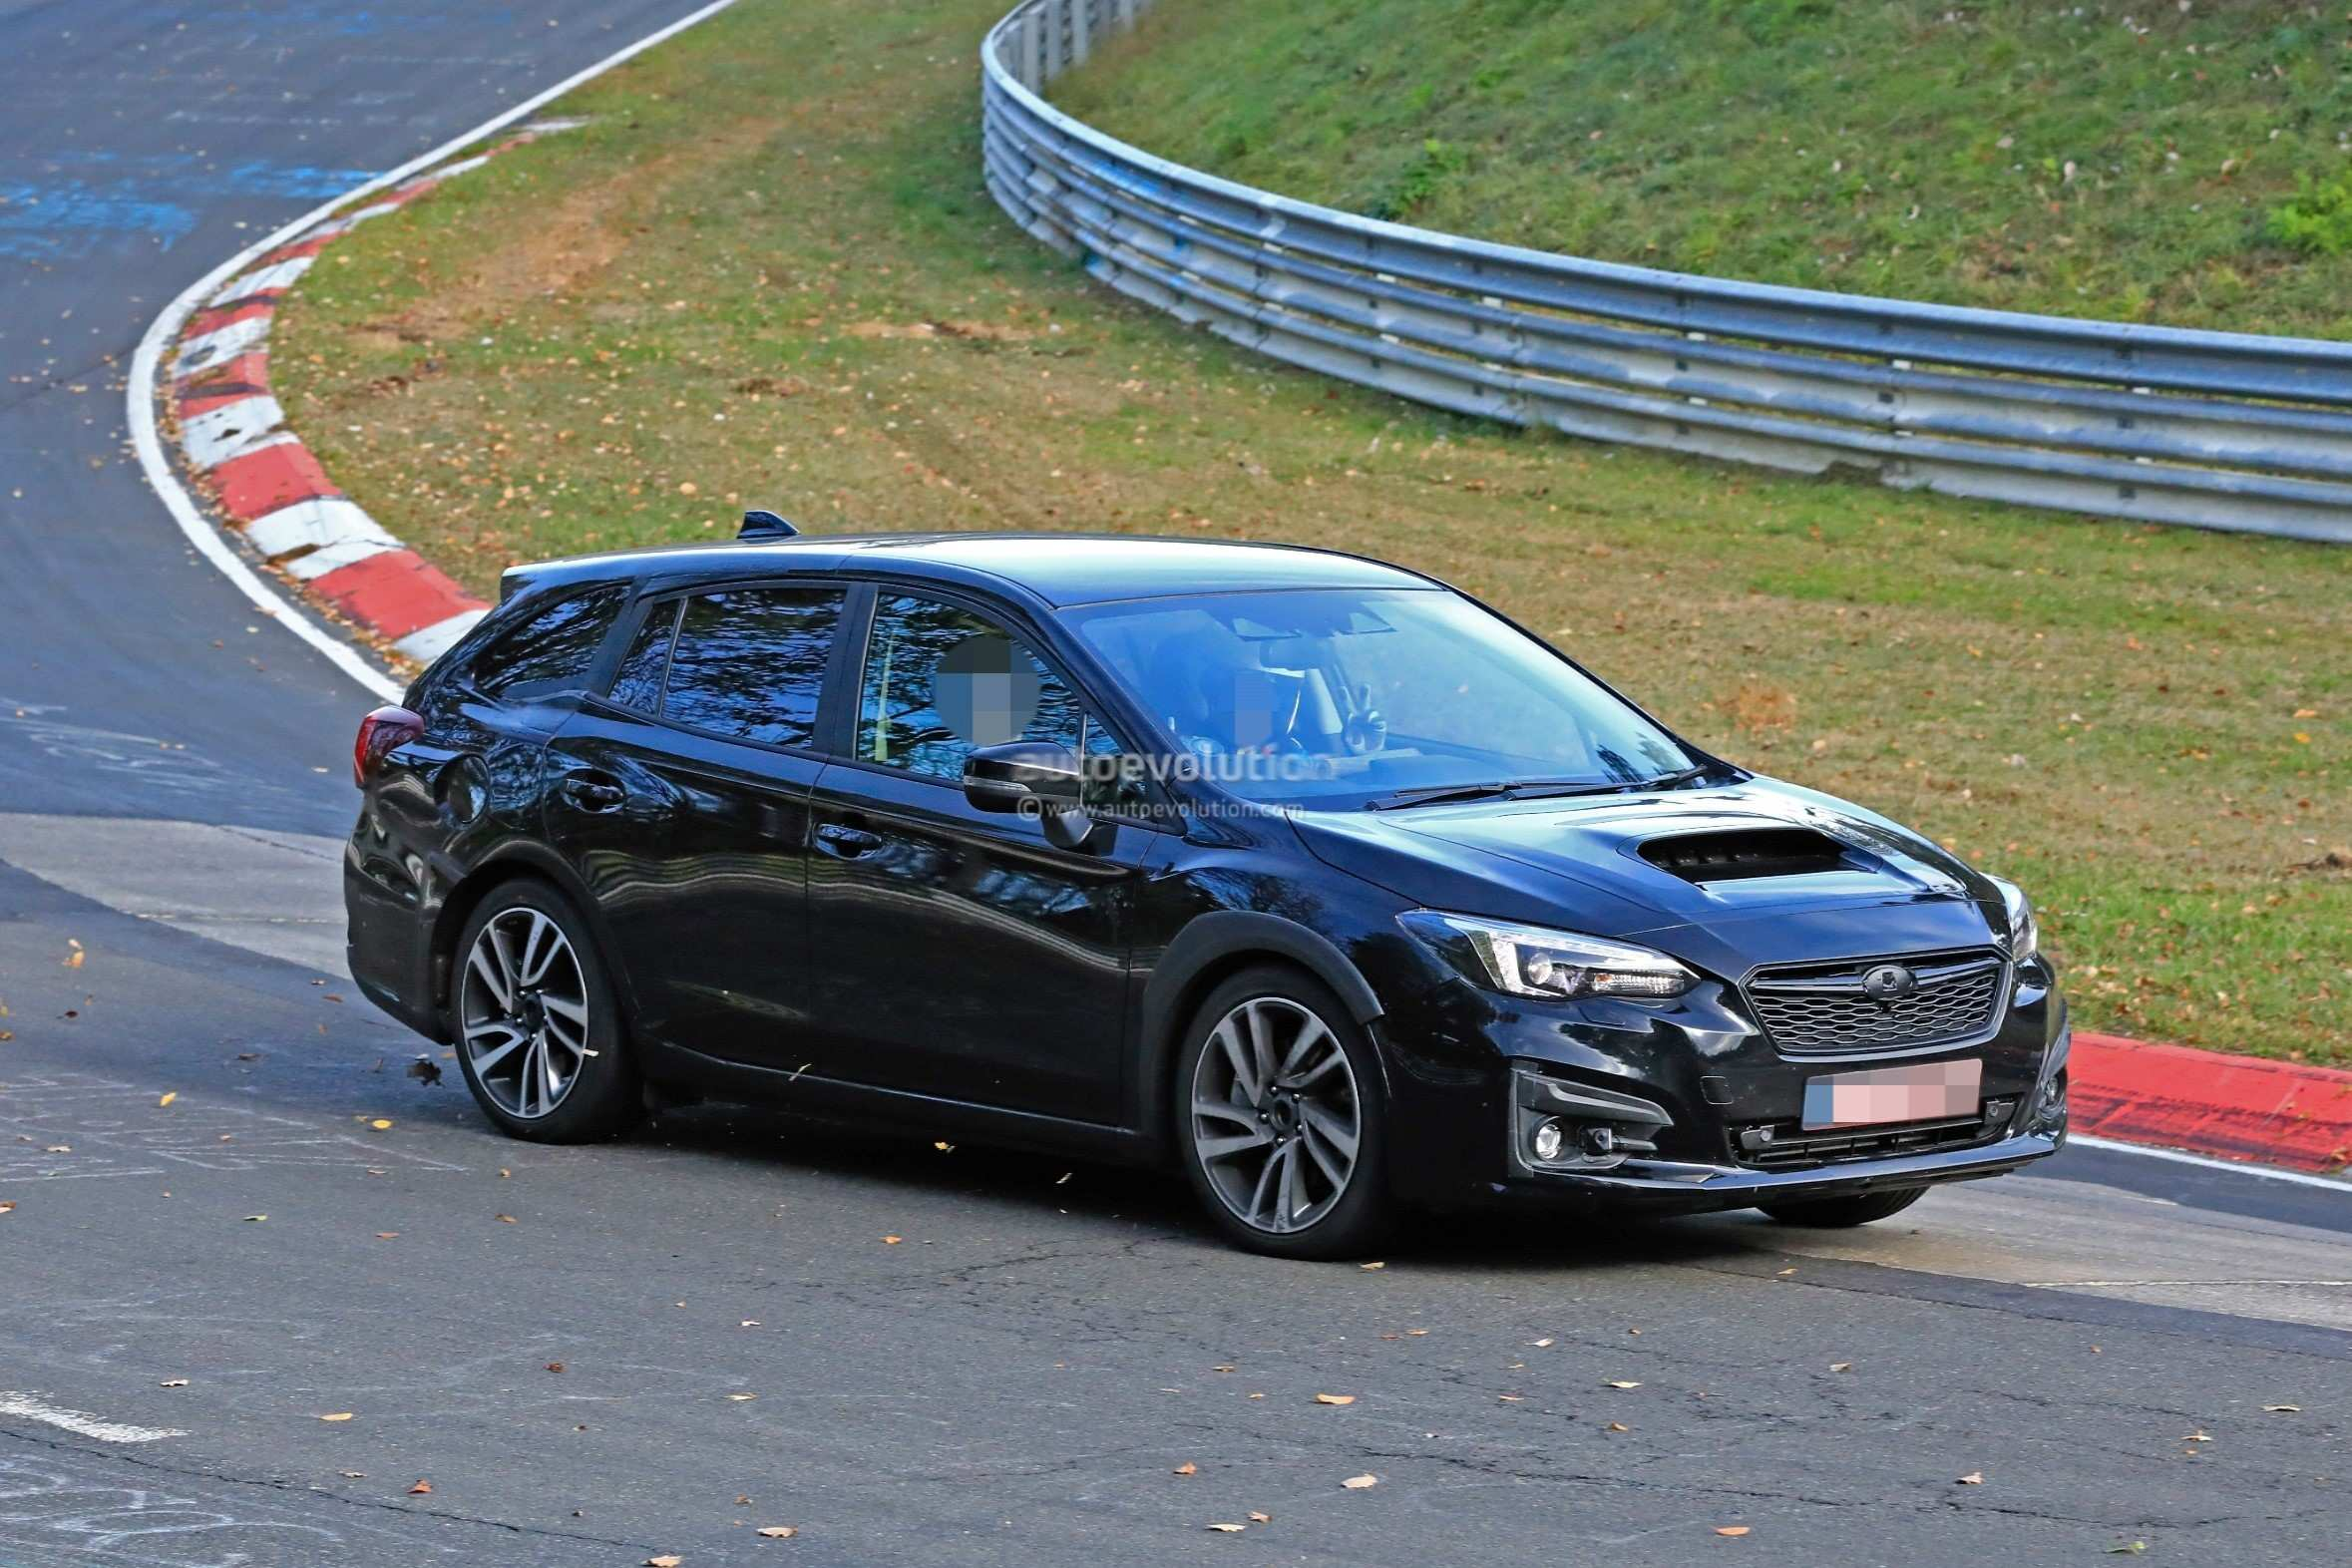 90 The Best Subaru Levorg 2020 Redesign And Concept